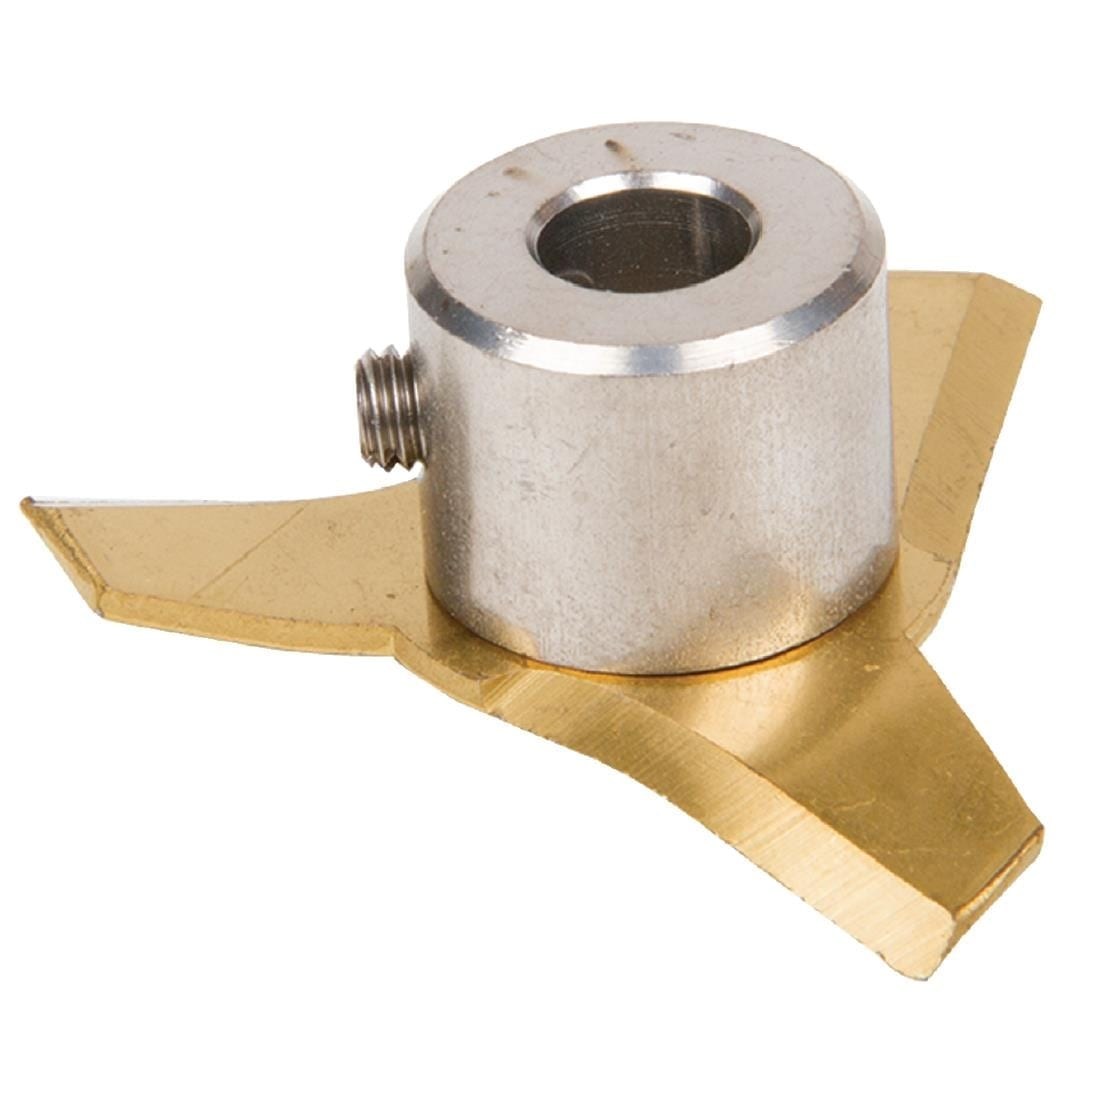 Cutter blade with screw